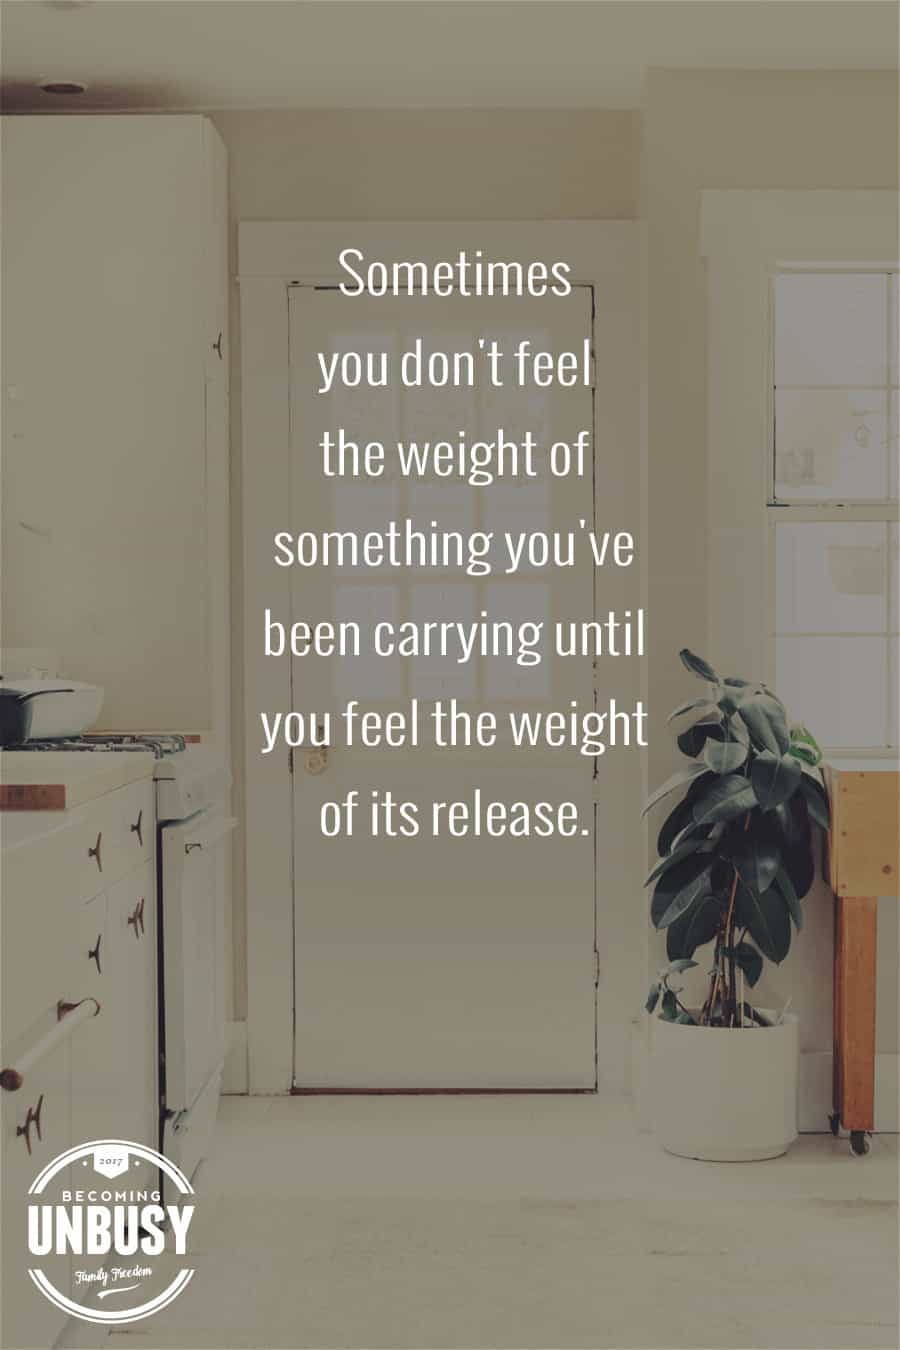 Sometimes you don't feel the weight of something you've been carrying until you feel the weight of its release. #declutter #minimalism #organization #BecomingUnBusy *Loving this 100 Things Weekend Challenge idea!